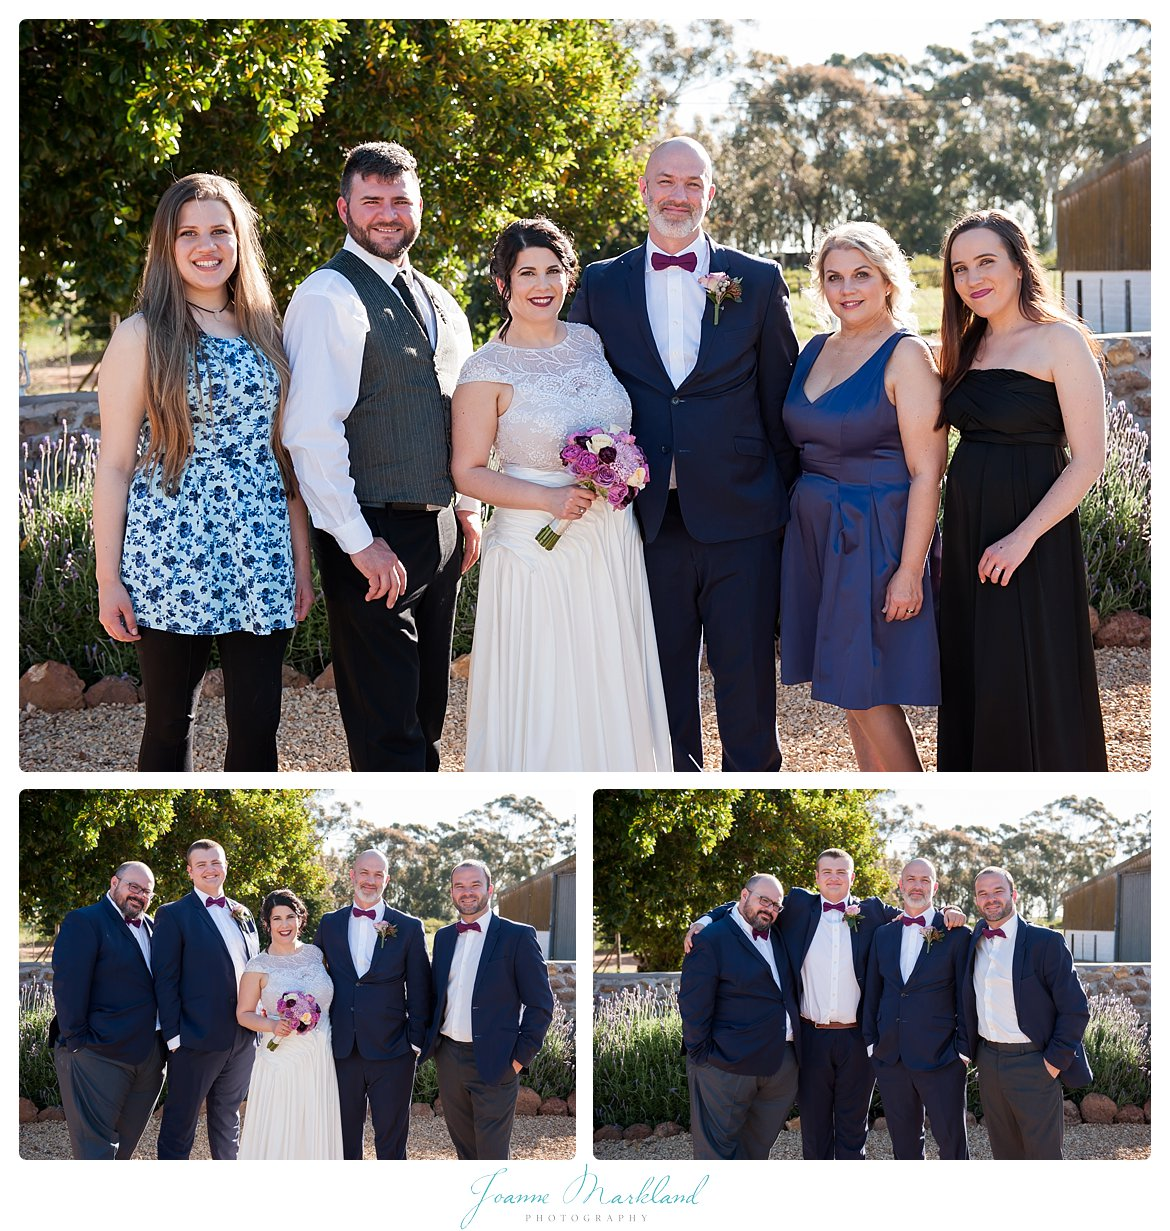 boorwater-wedding-hopefield-west-coast-cape-town-joanne-markland-photography-027